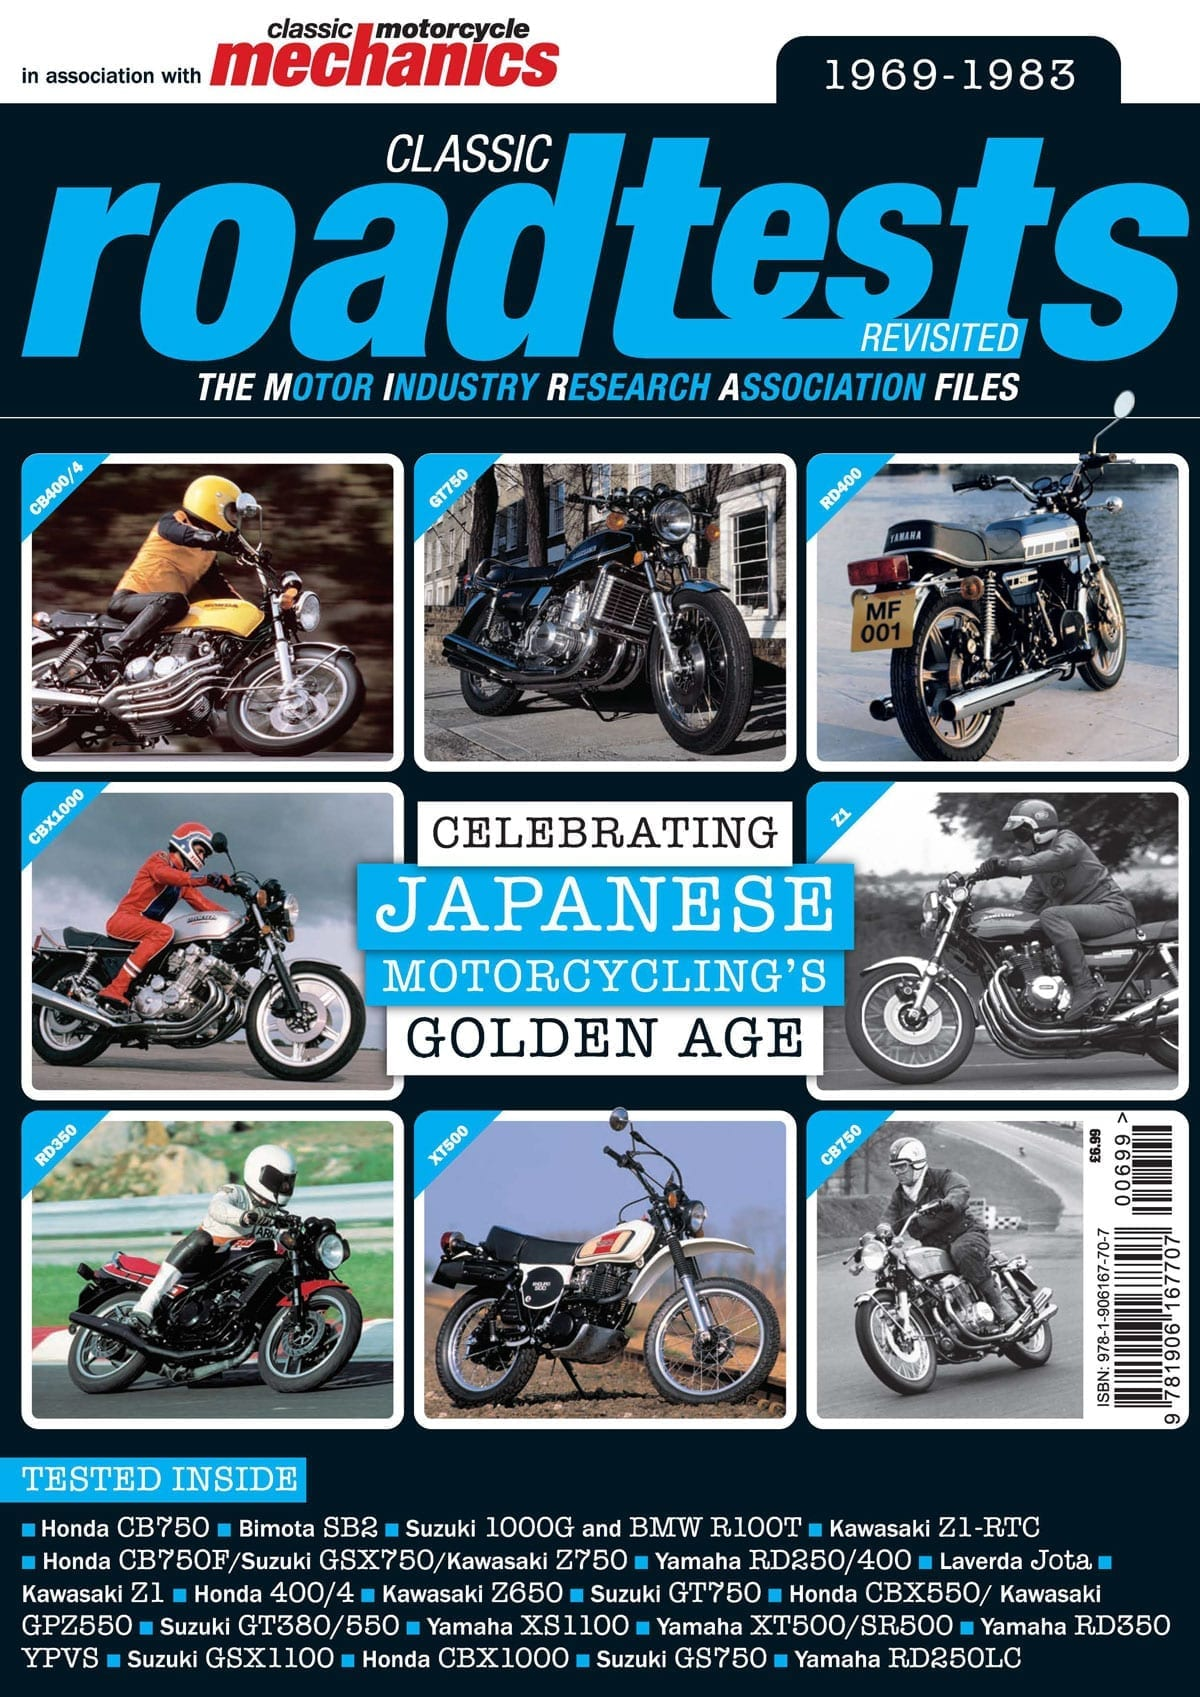 Classic Roadtests Revisited - Celebrating Japanese Motorcycling's Golden Age